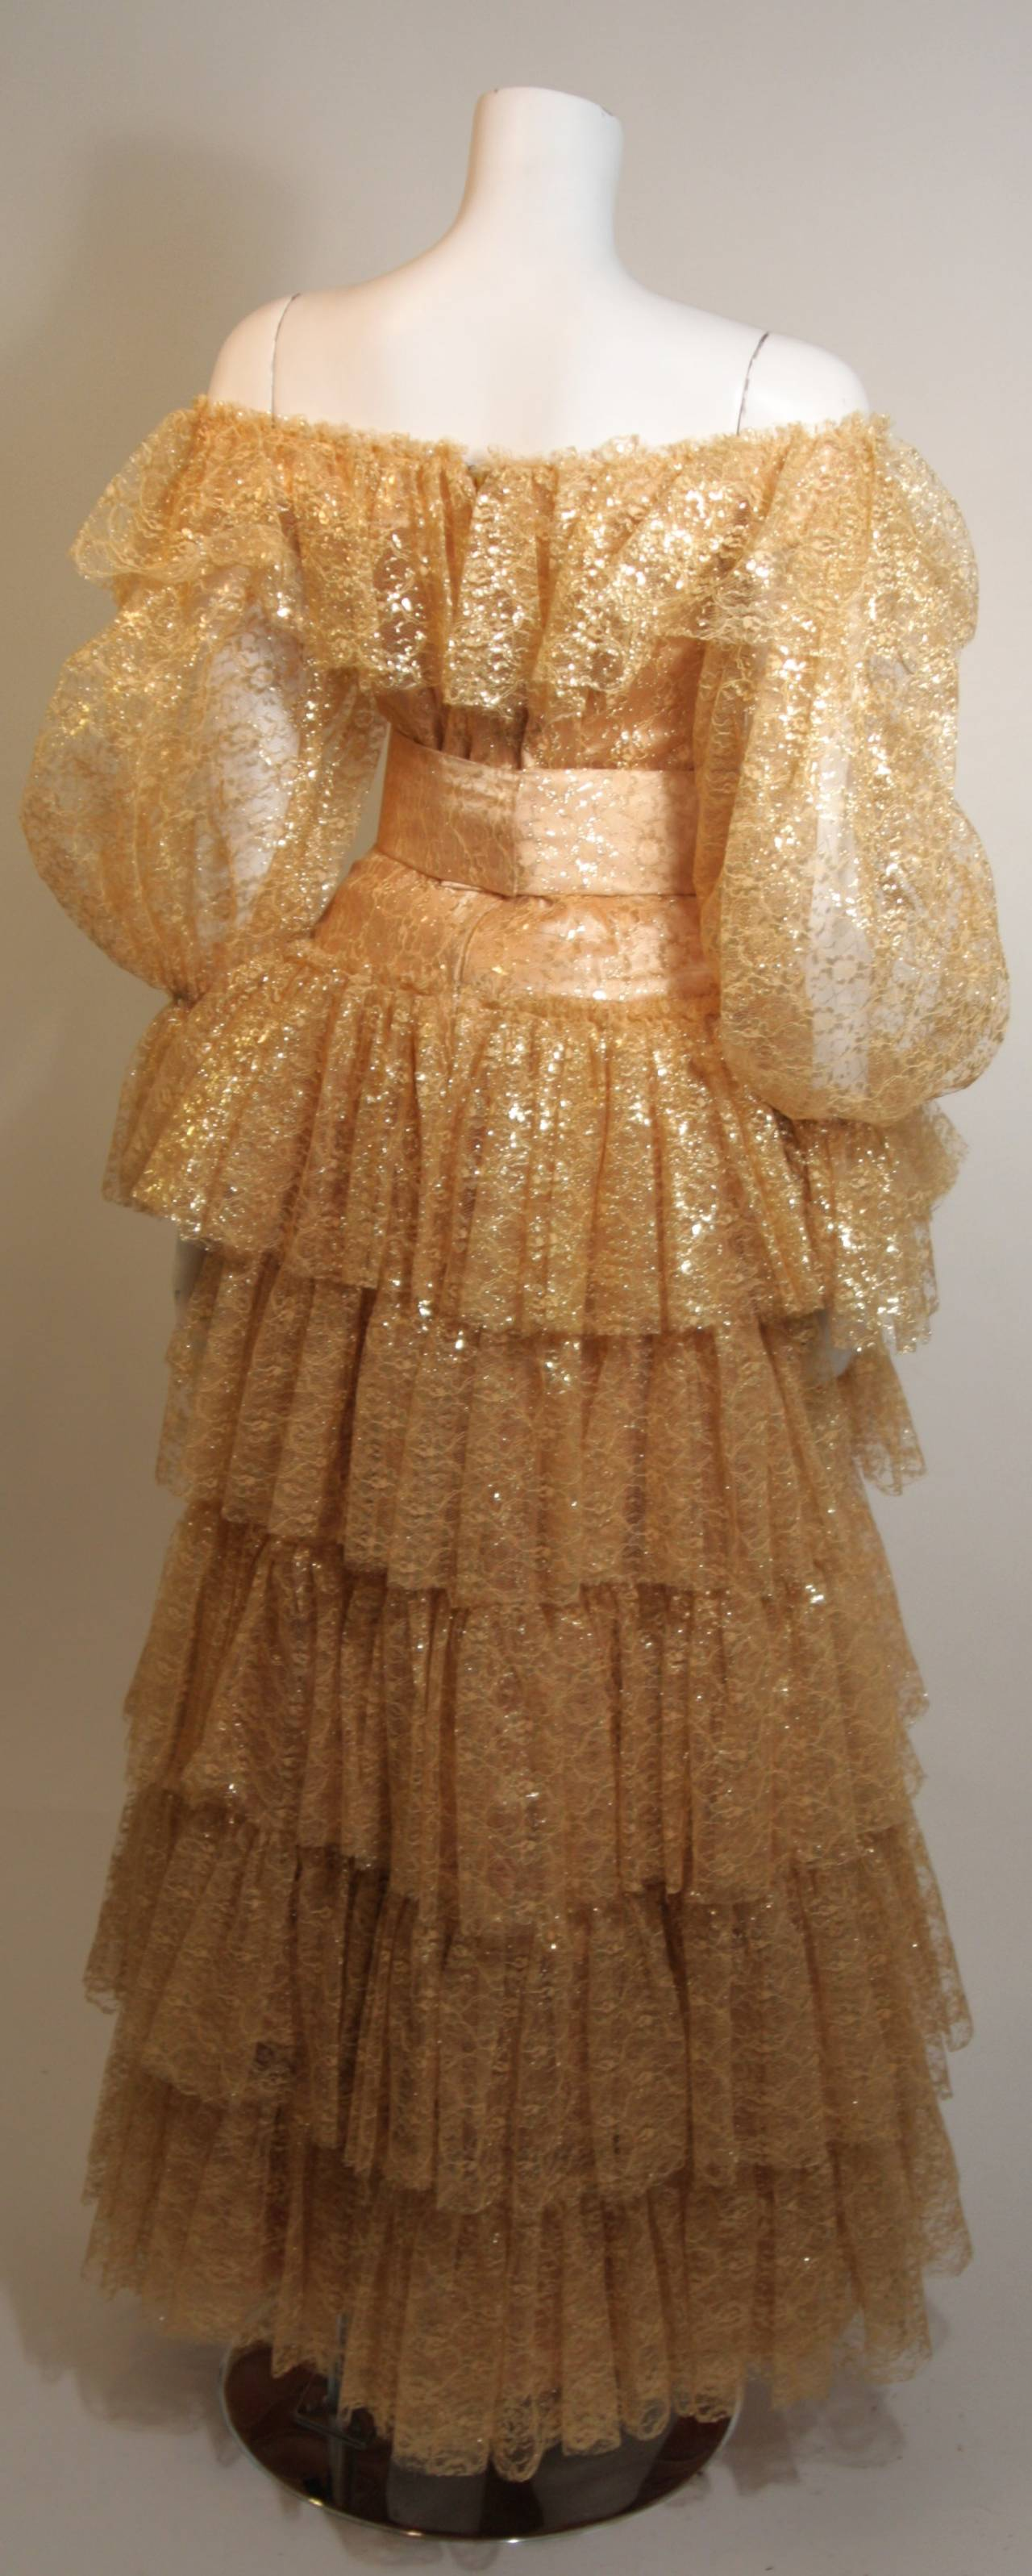 Attributed to Travilla Gold Tiered Lace Ball Gown with sheer lace sleeves size 4 For Sale 1